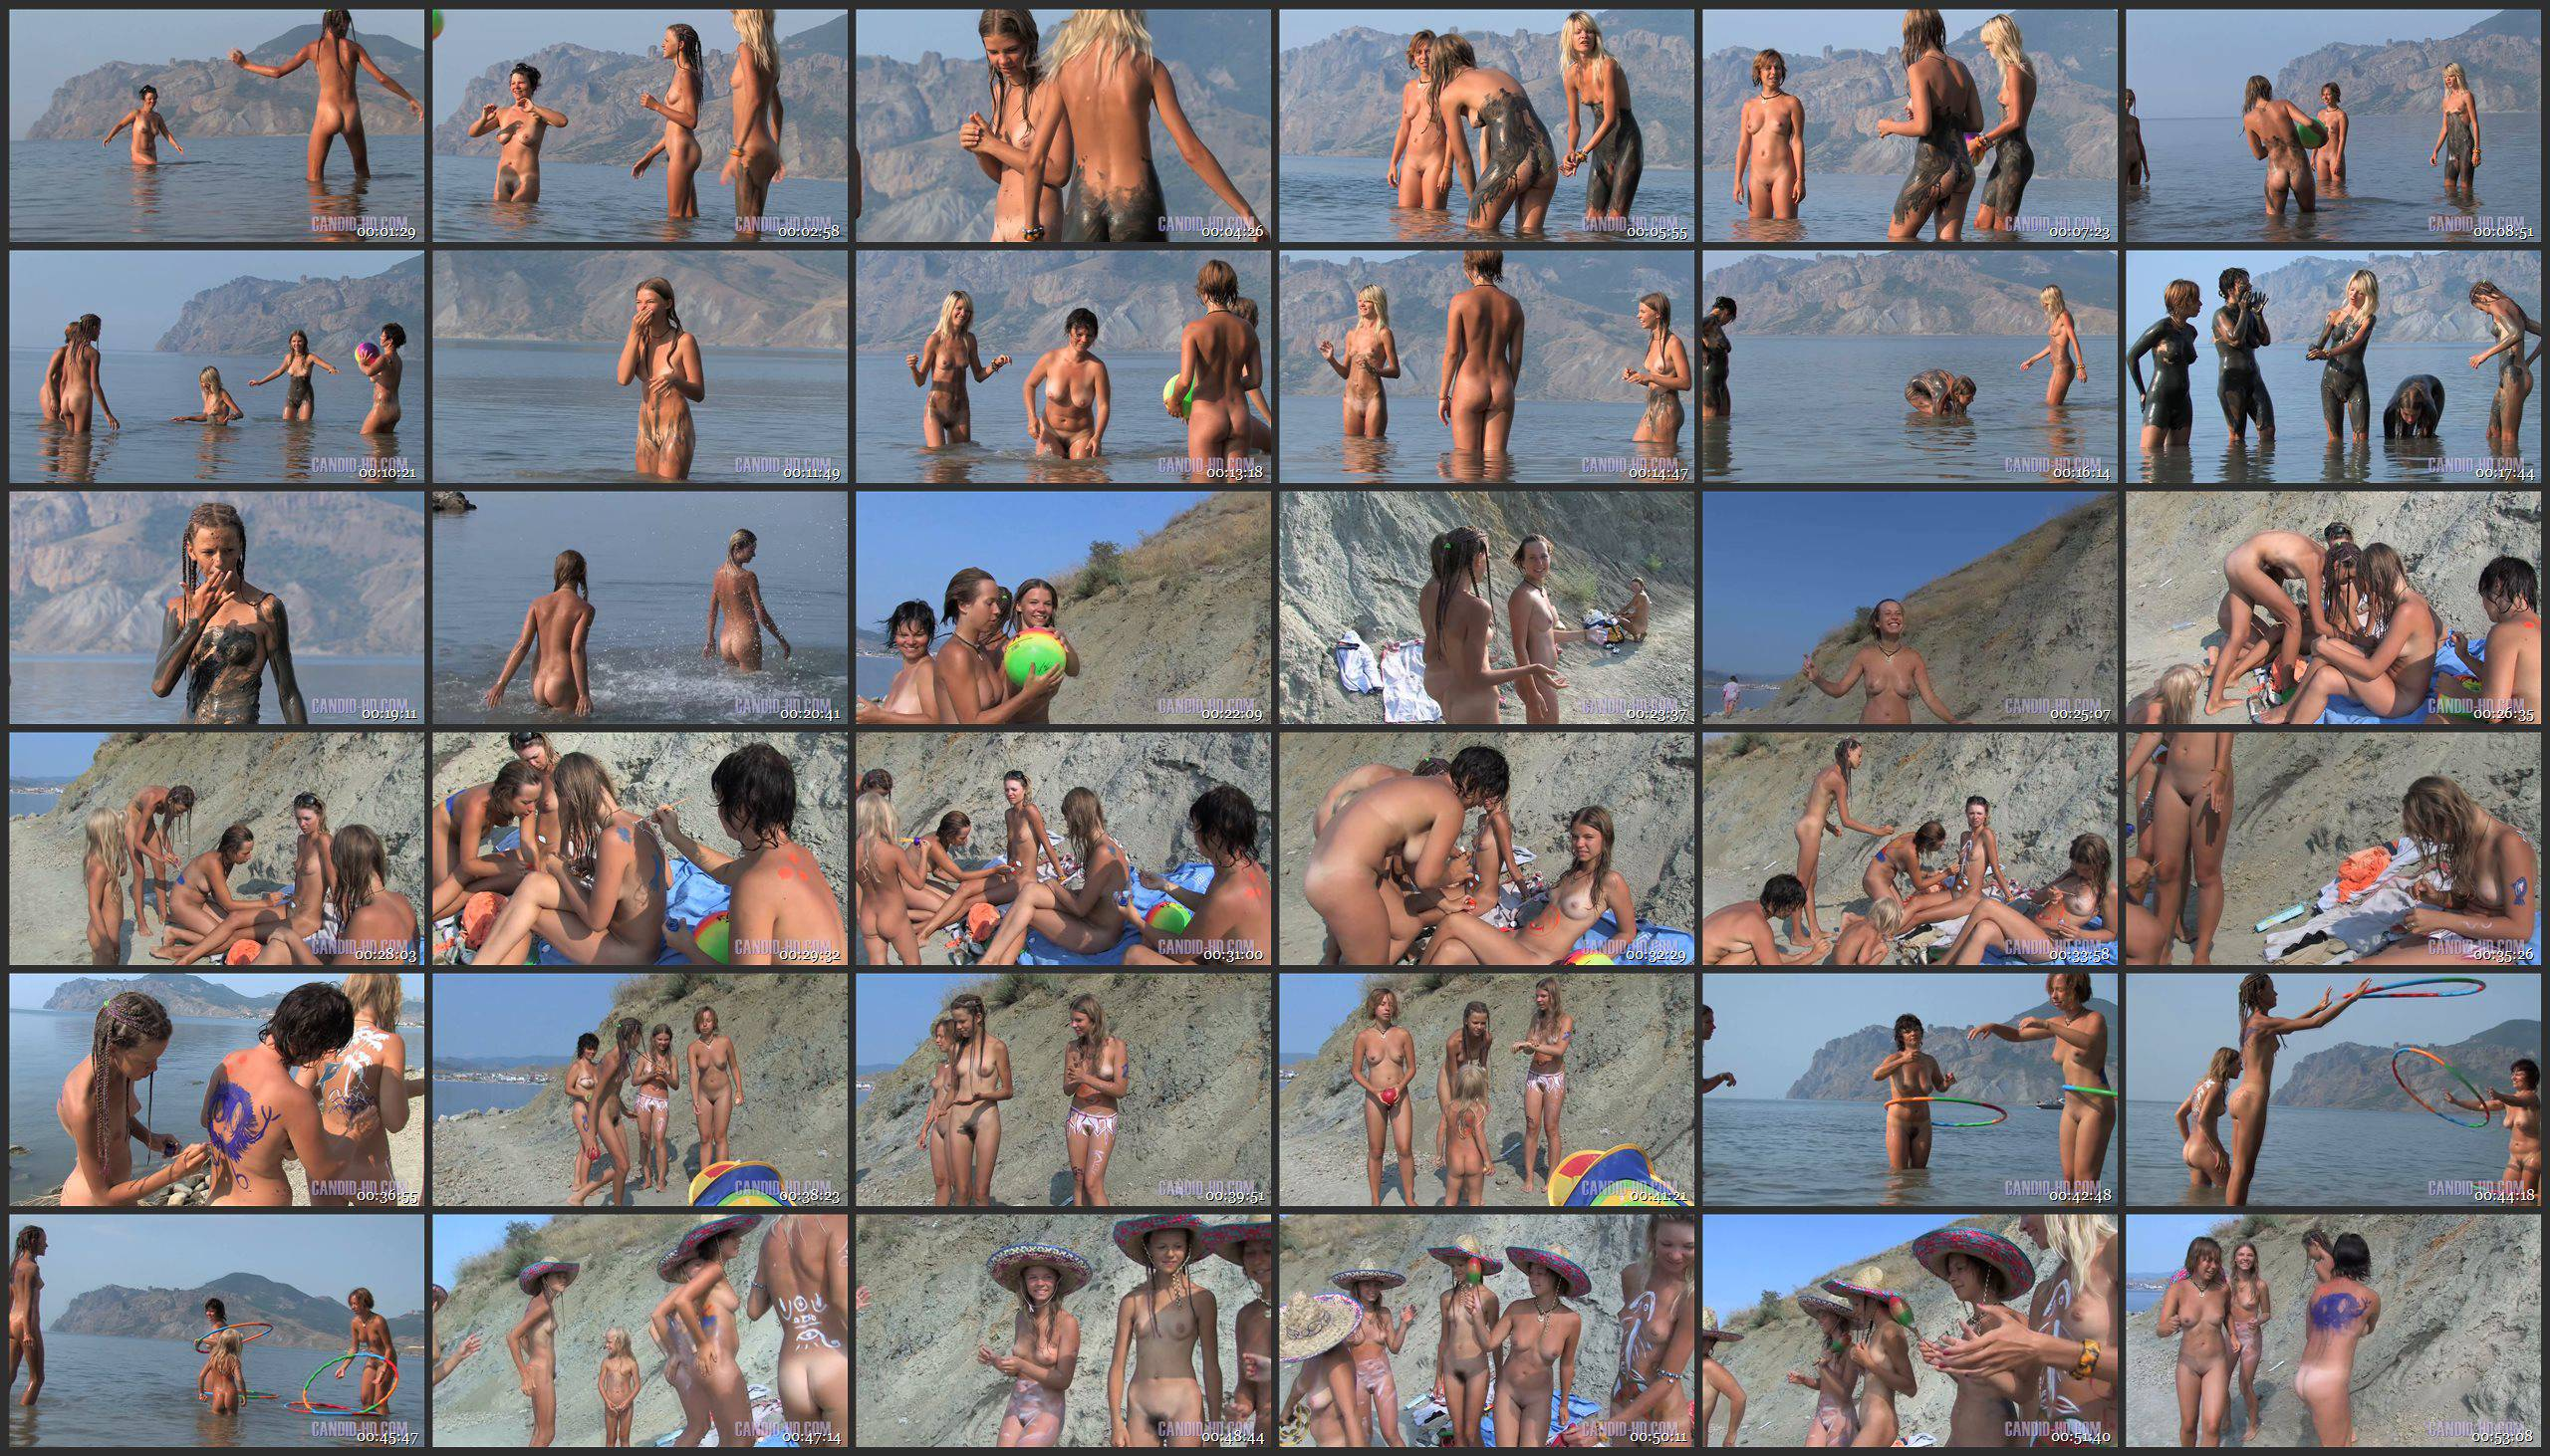 Candid-HD Videos-Mom and Daughter Beach Games 1 - Thumbnails